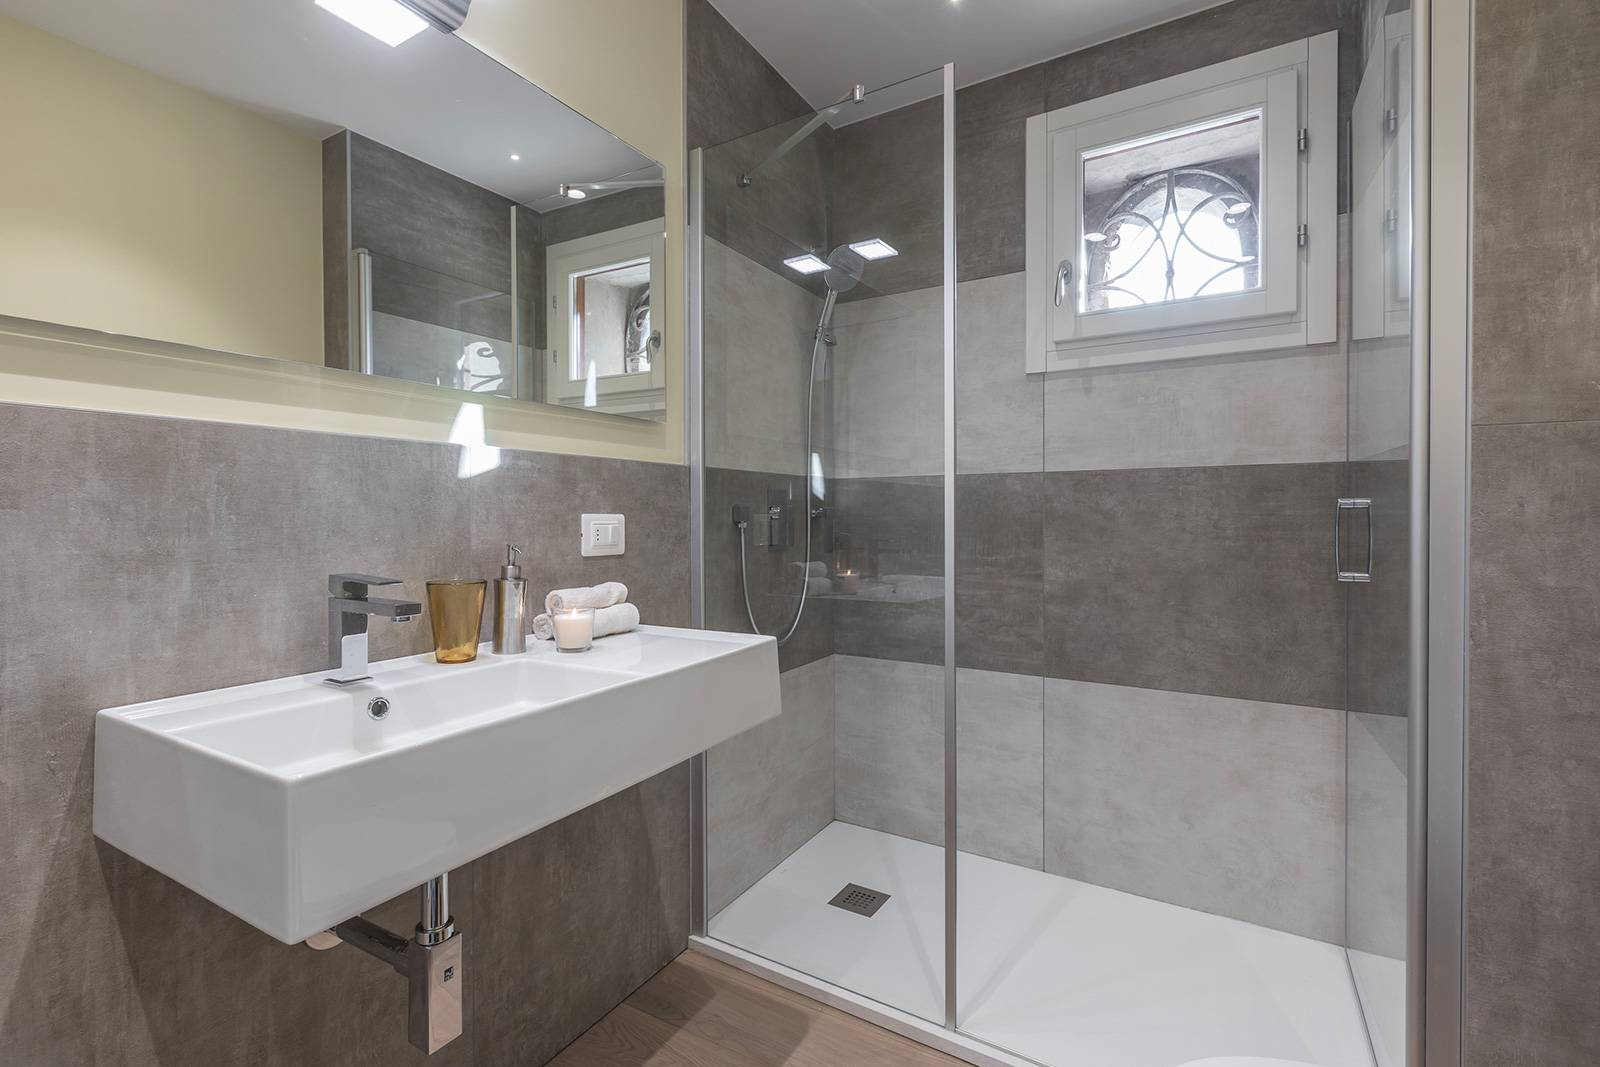 fourth bathroom connected to the bedroom at the ground floor